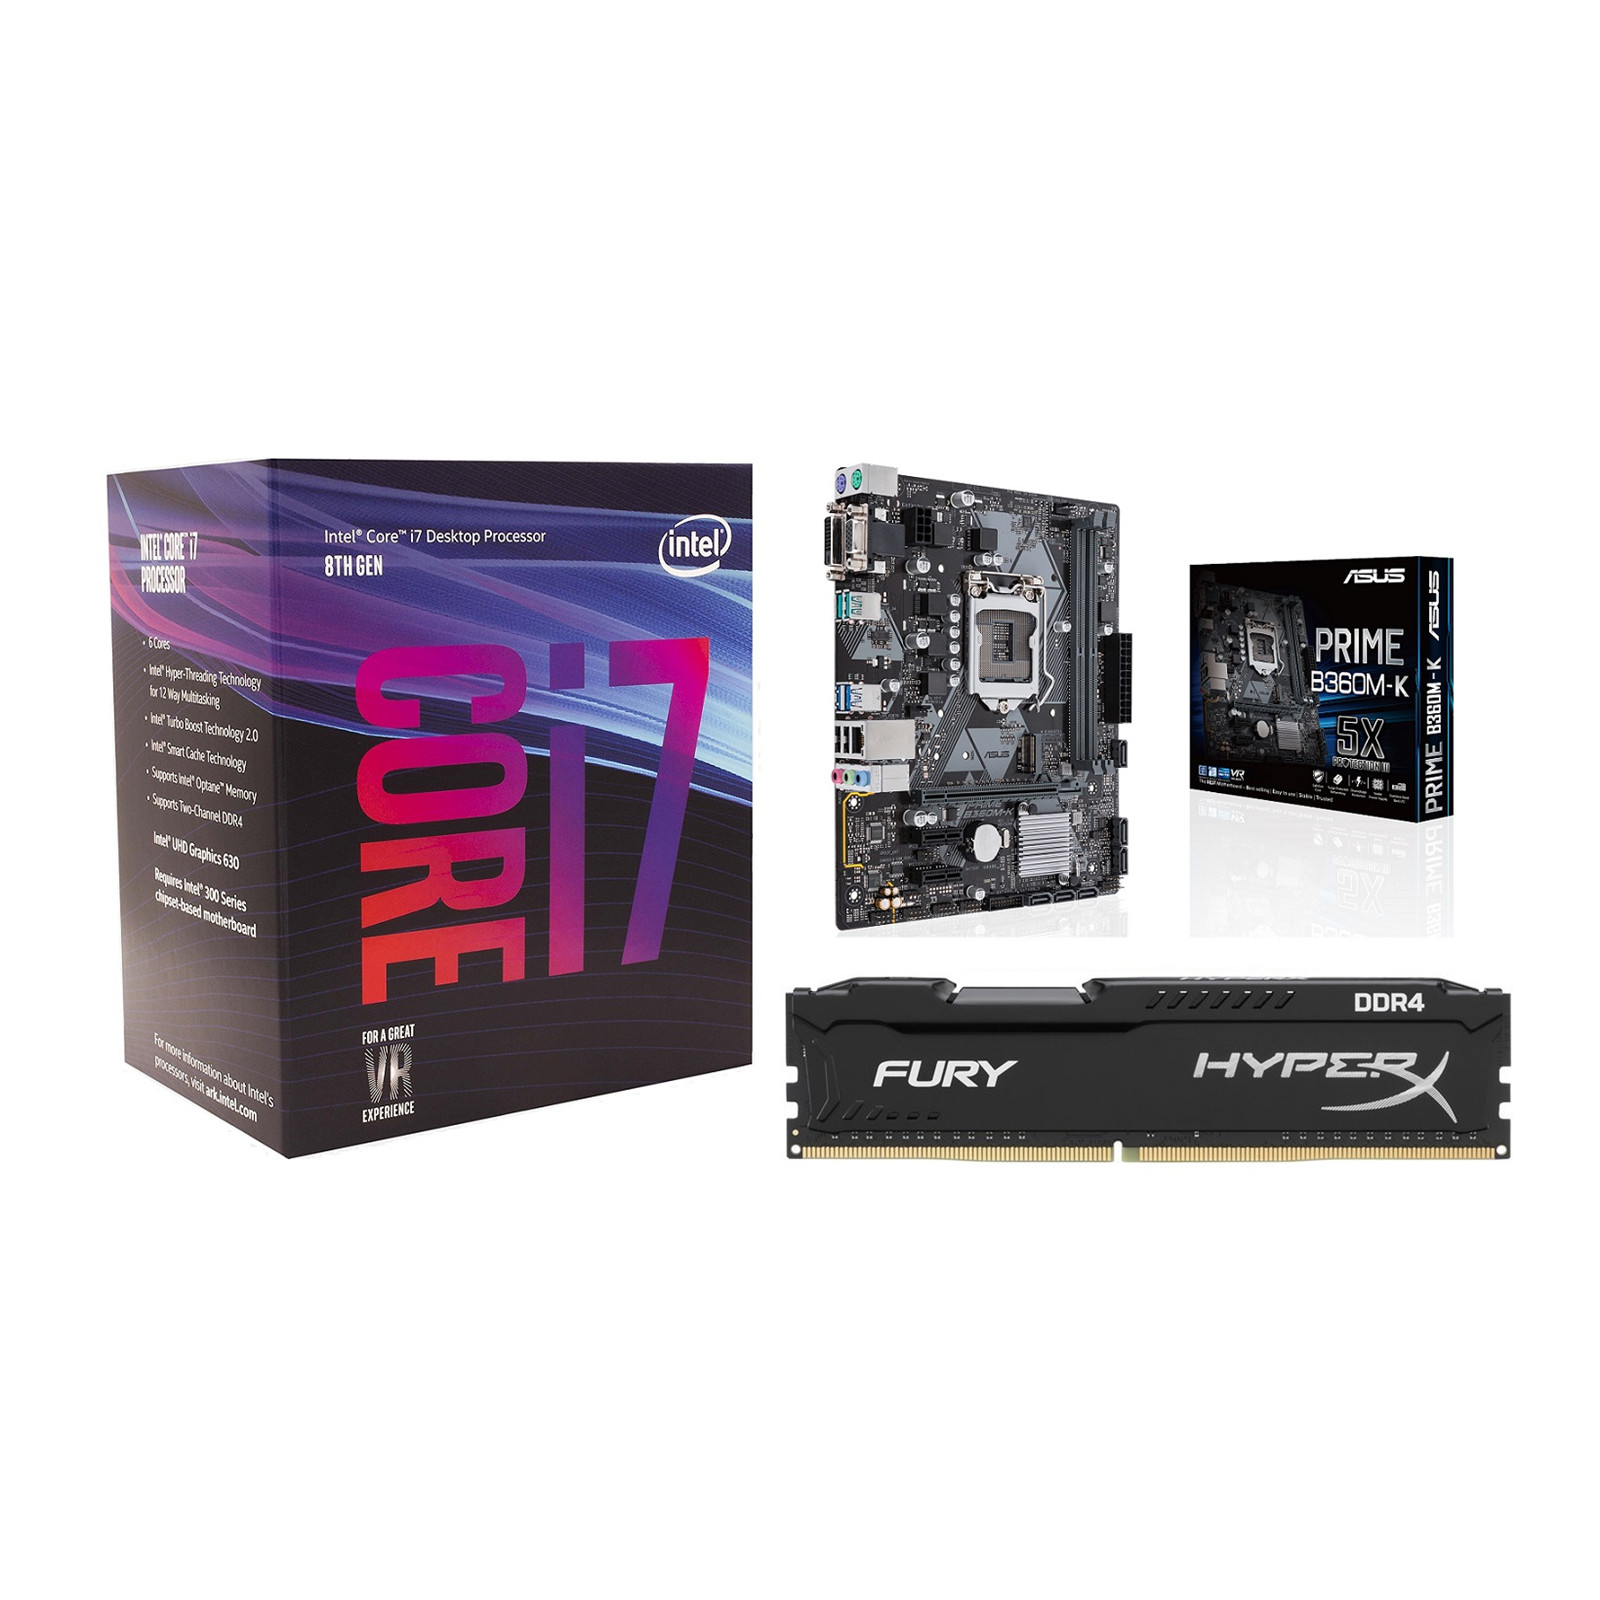 Buy the PB Upgrade Kits CPU, RAM & Motherboard 11002 Intel